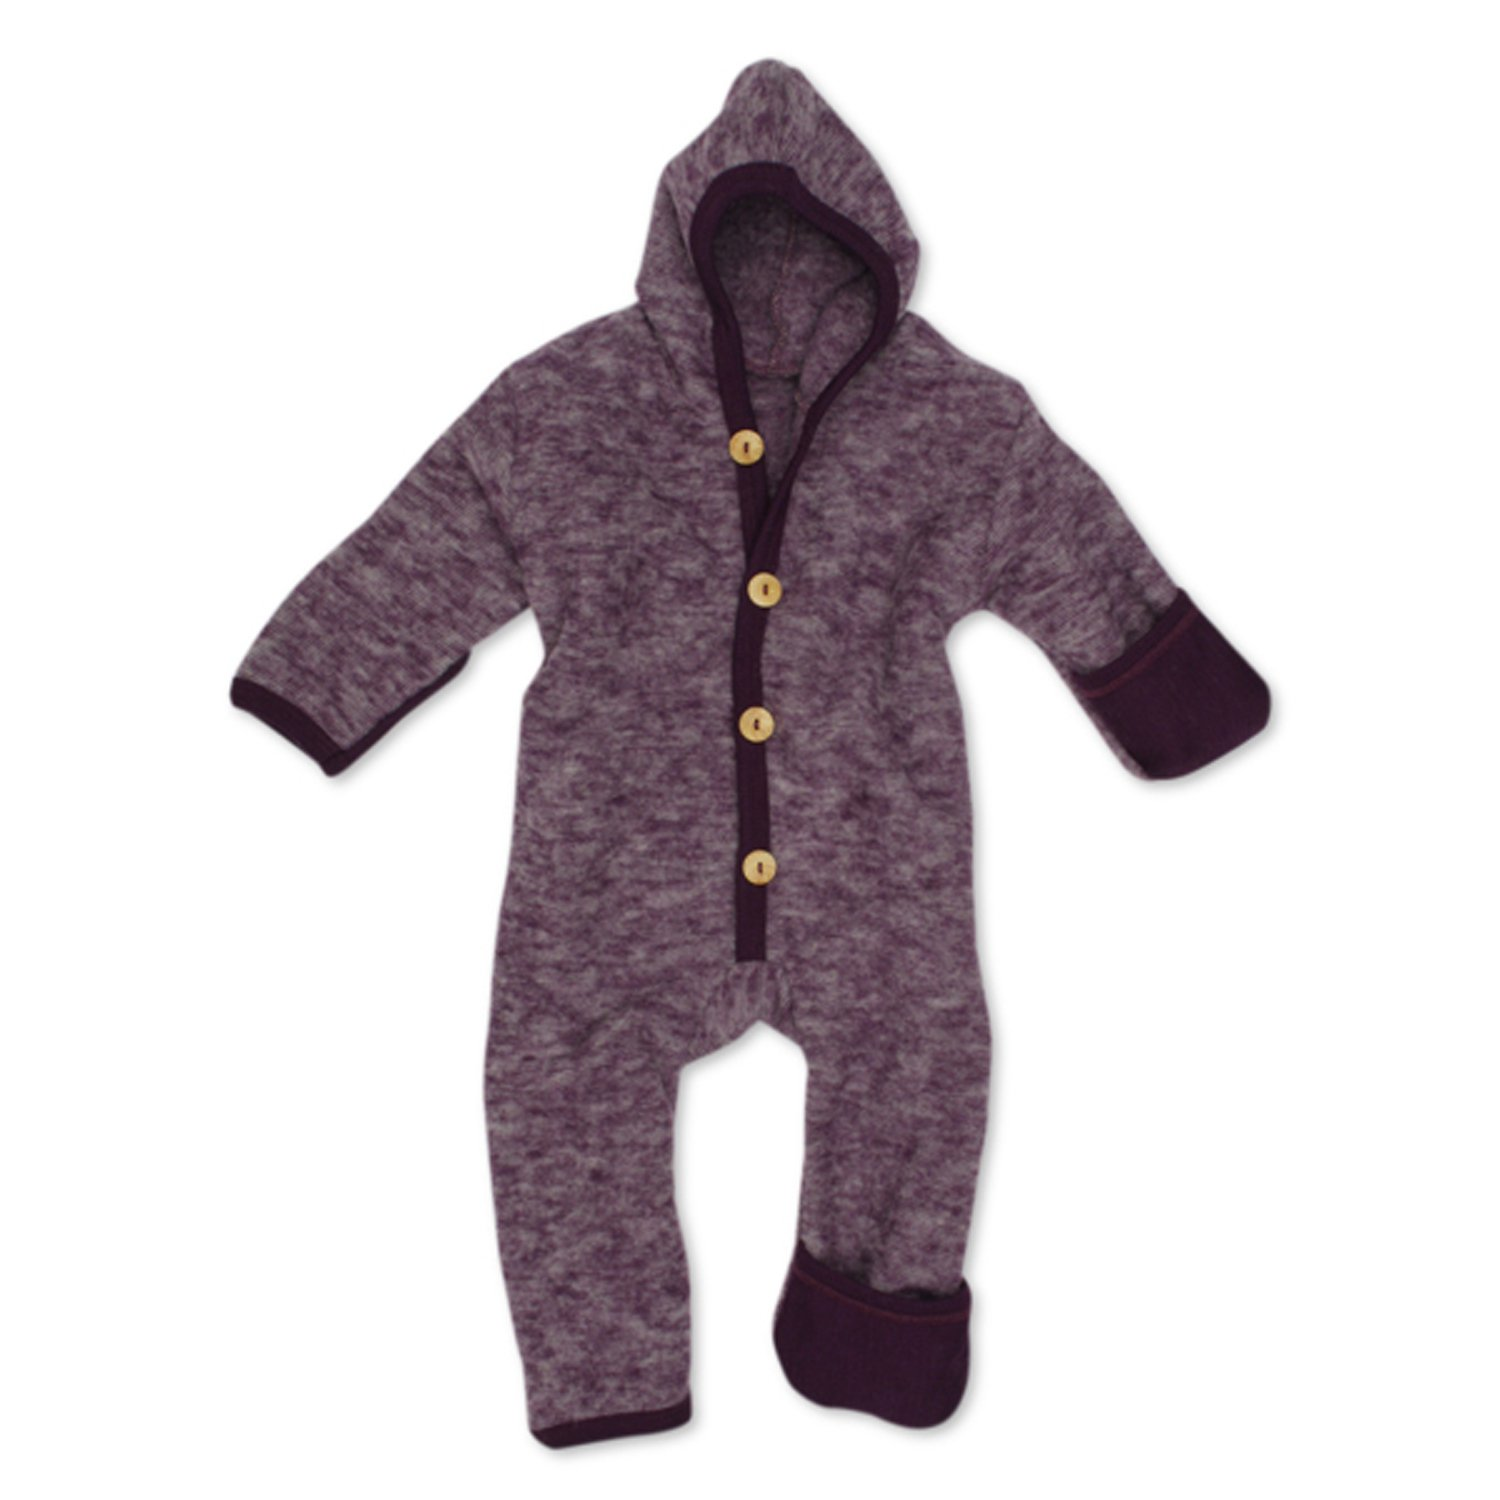 Cosilana - Baby Hooded Overall With Scratch Protection on Arms and Legs, 100% Organic Merino Wool